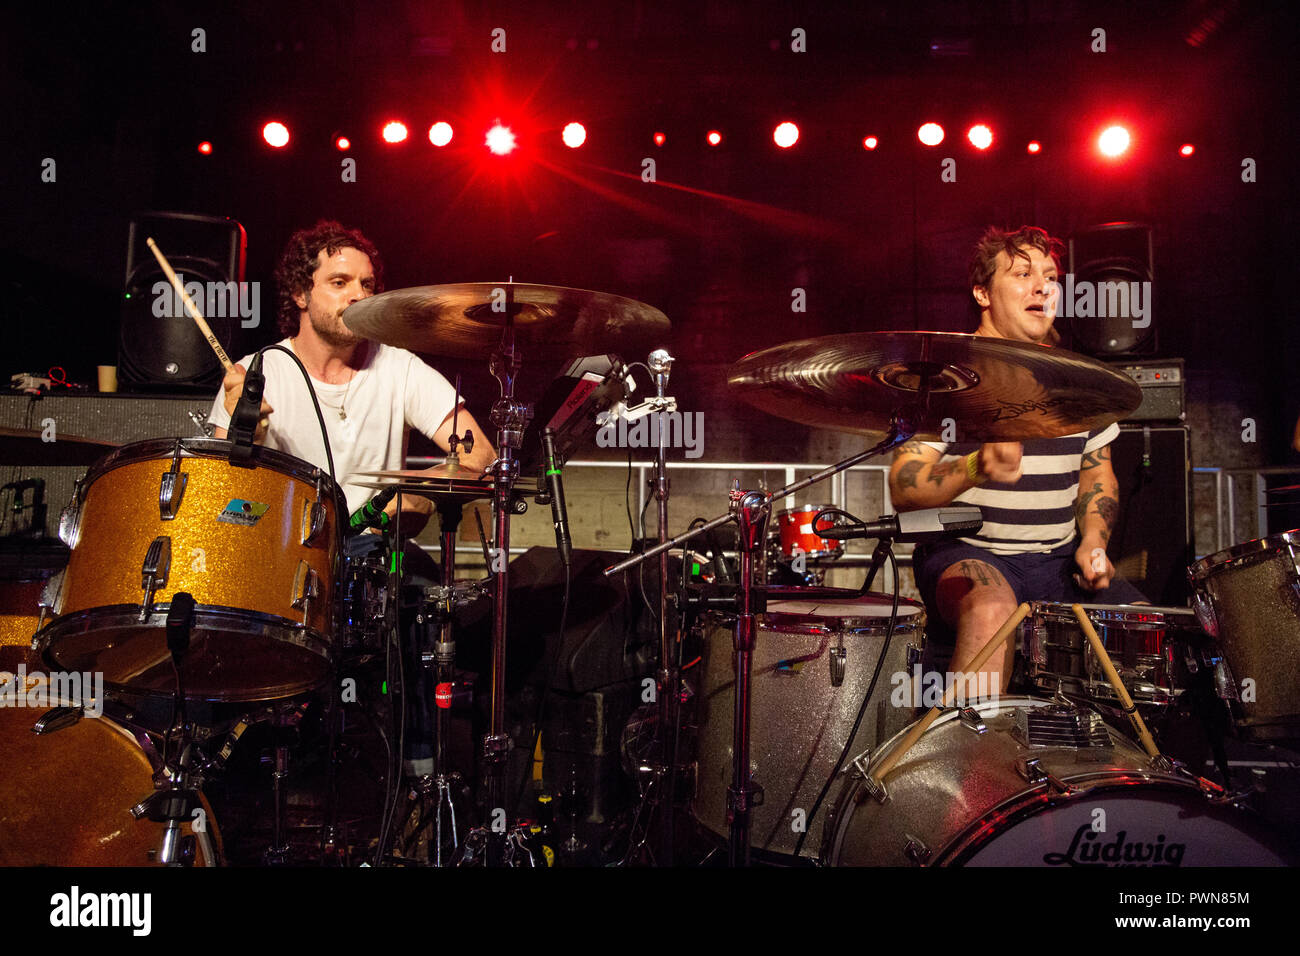 Oh Sees (Thee Oh Sees) dual drummers - 12th July 2018 - Boiler Shop Newcastle - Live concert performance - Stock Image